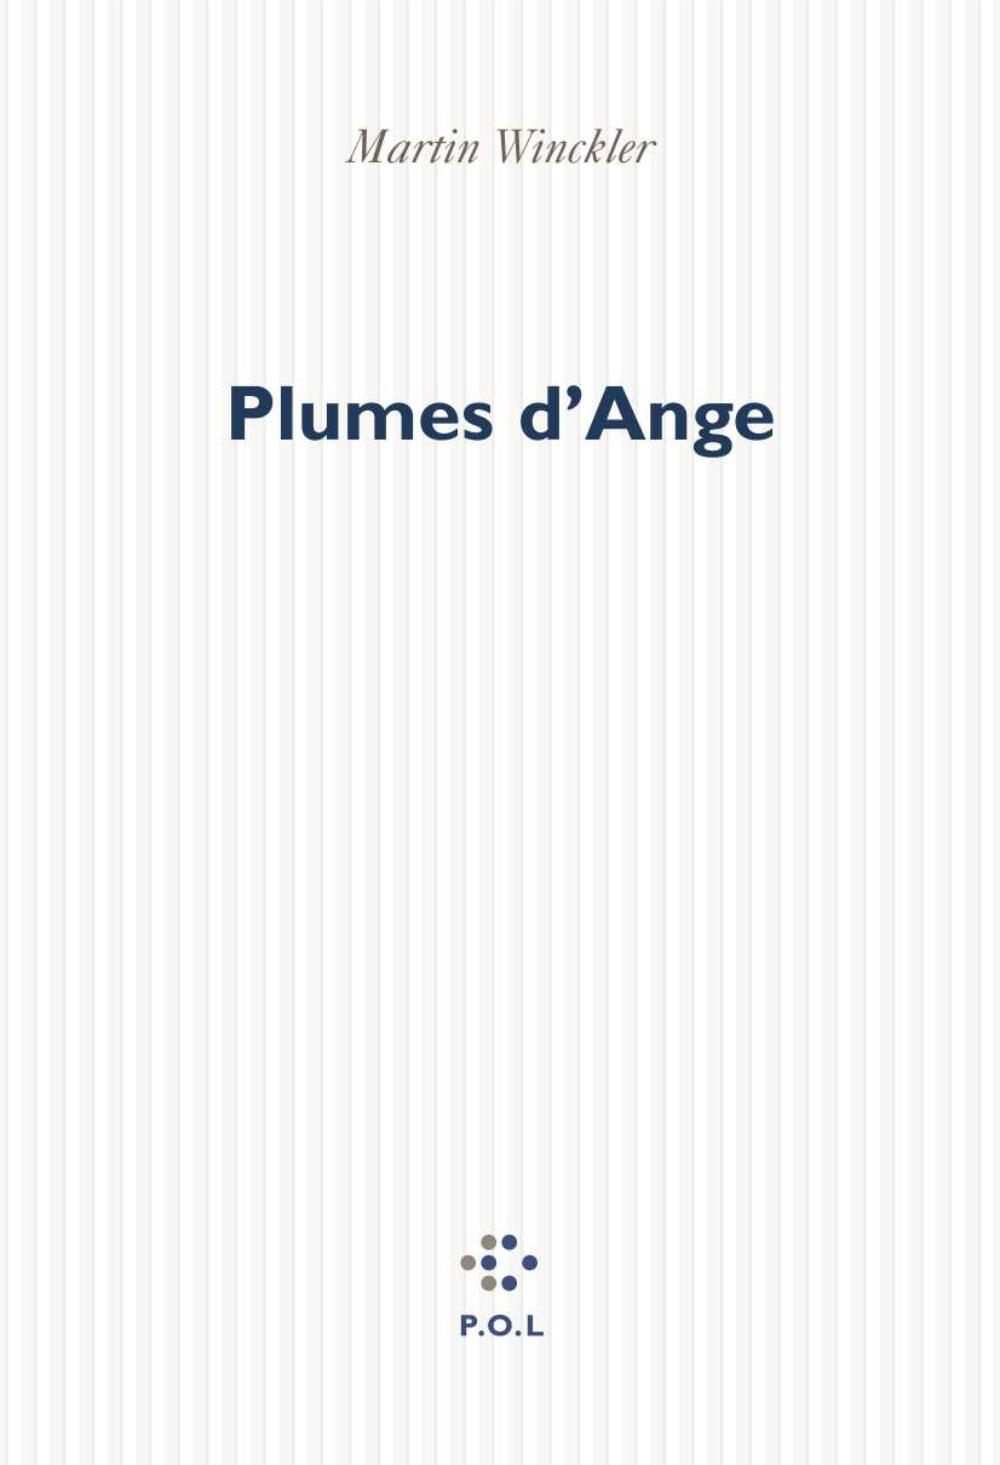 Plumes d'Ange